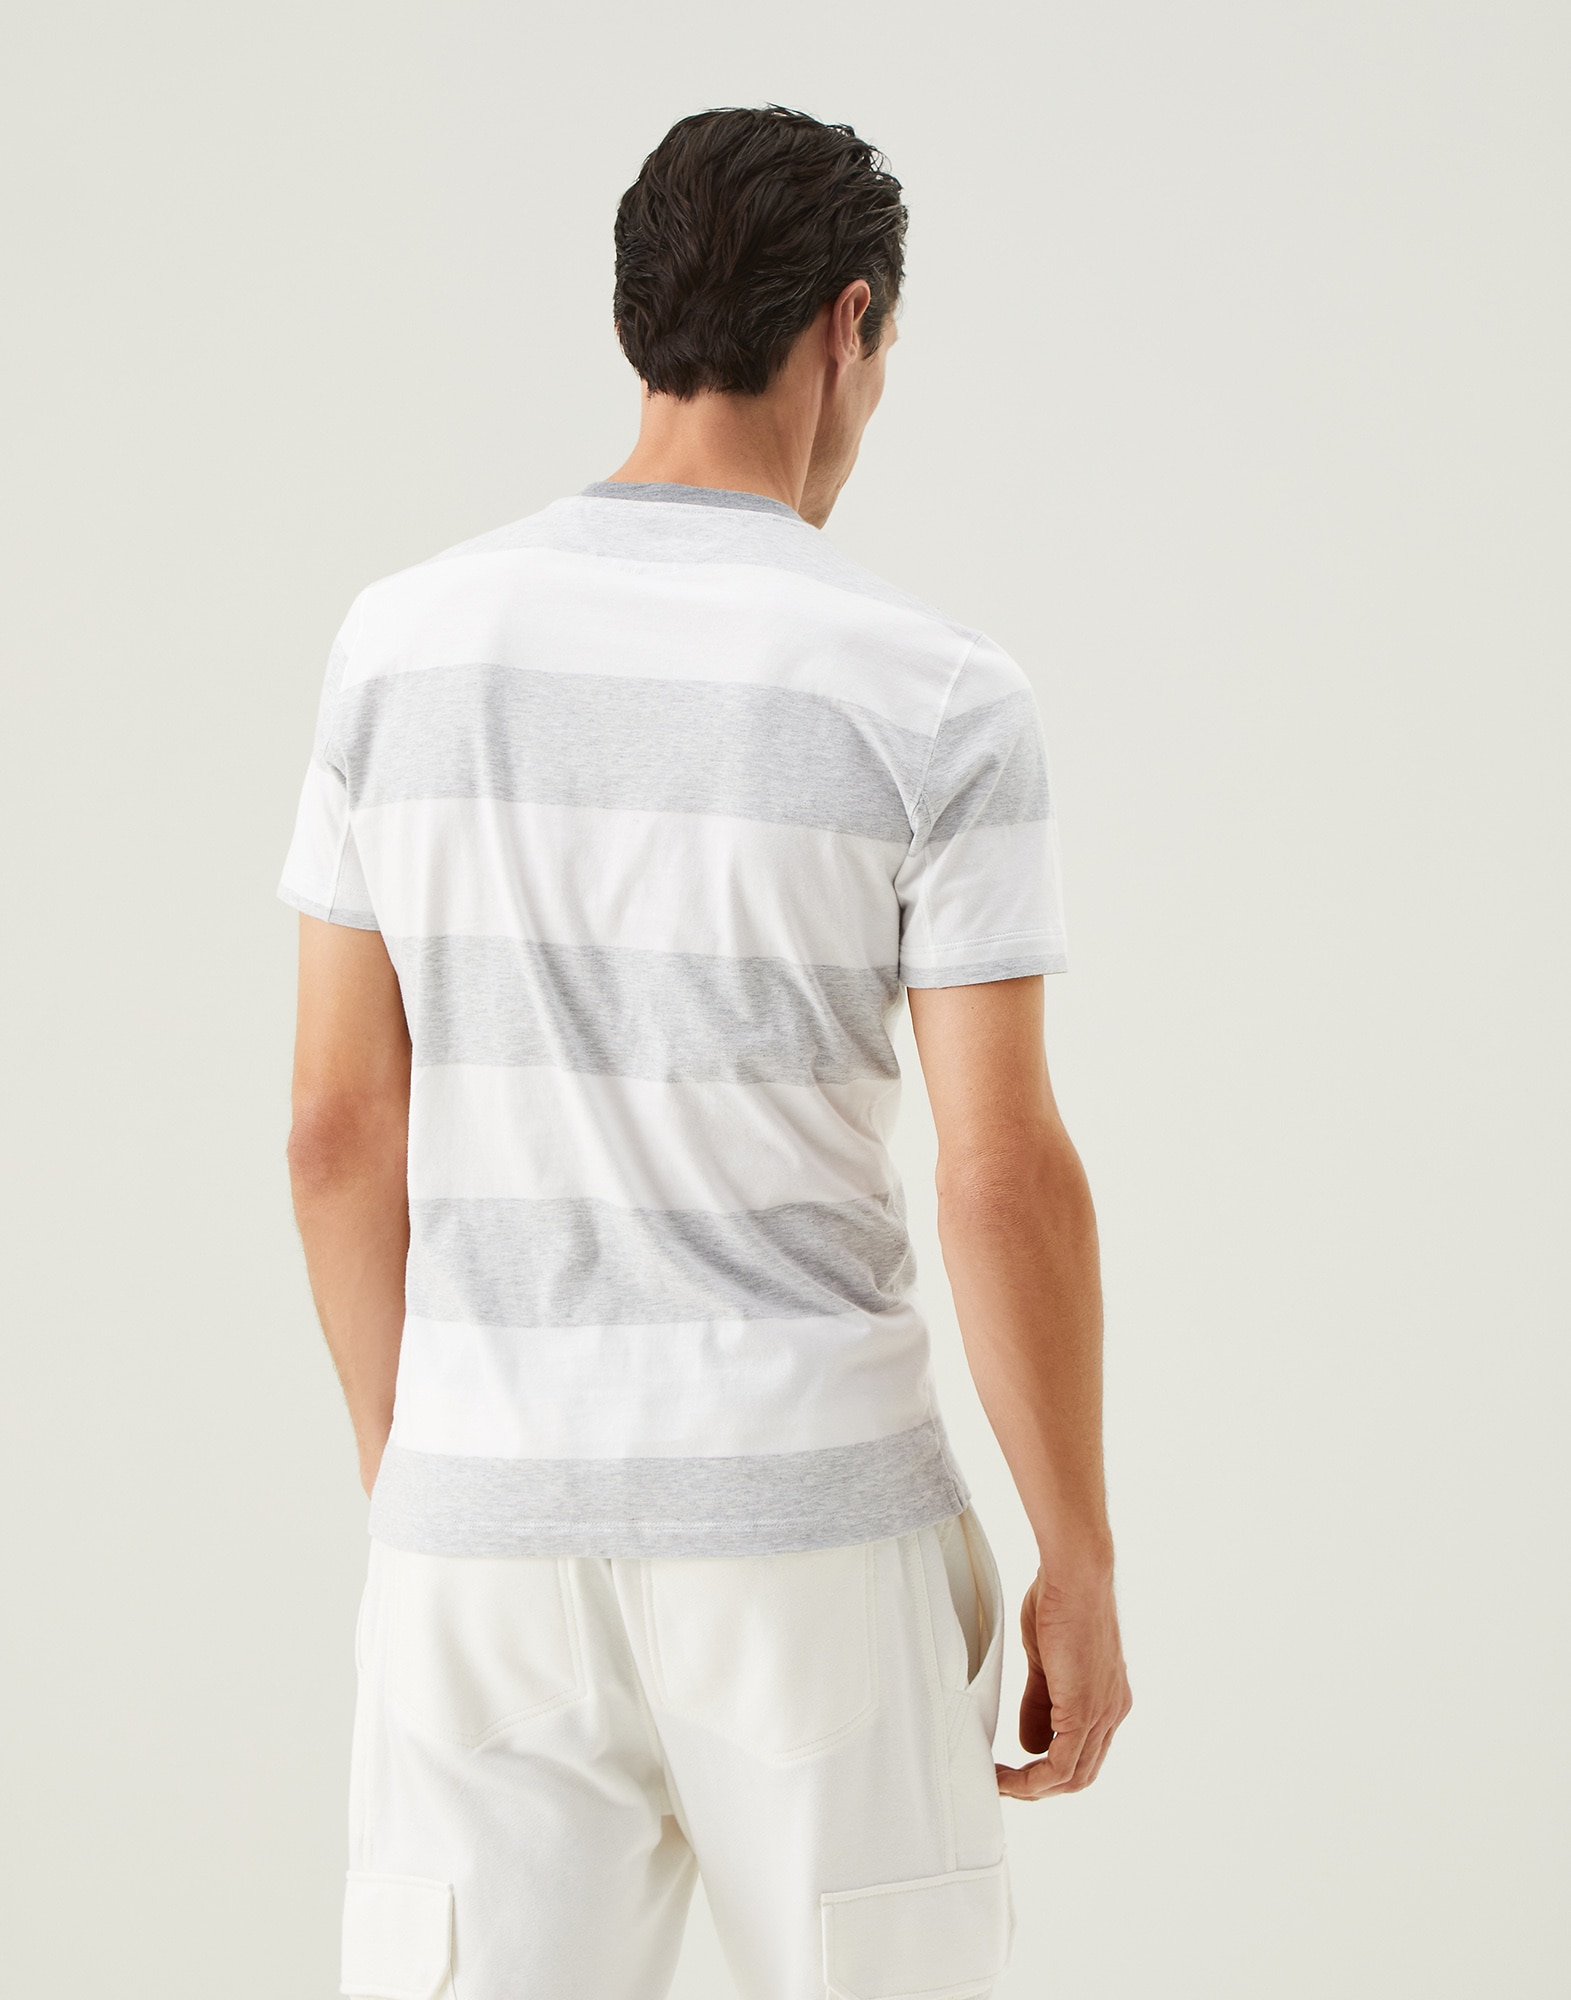 Short Sleeve T-Shirt - Back view